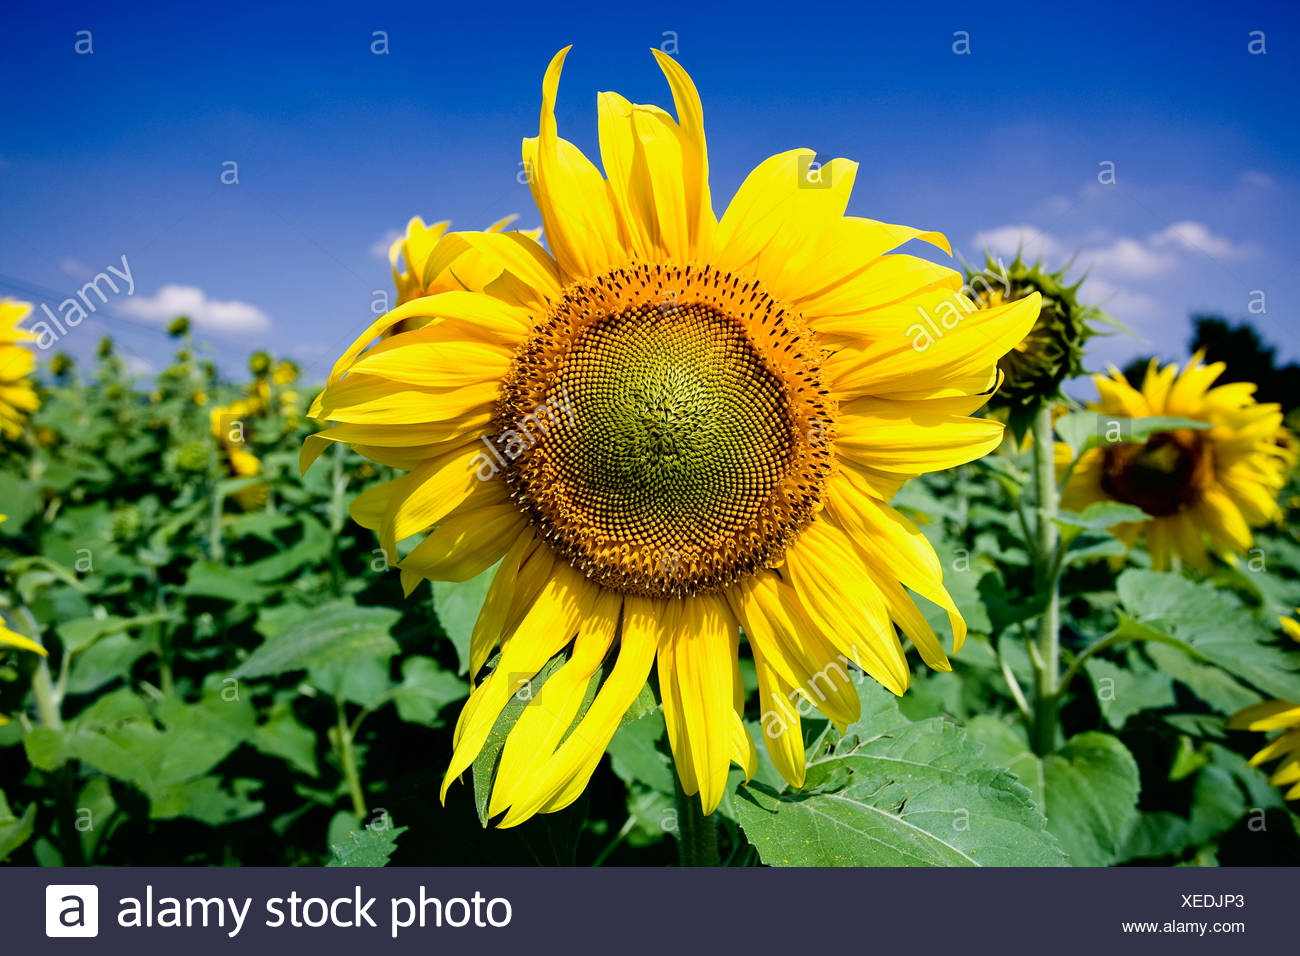 Sunflowers in the sunlight - Stock Image